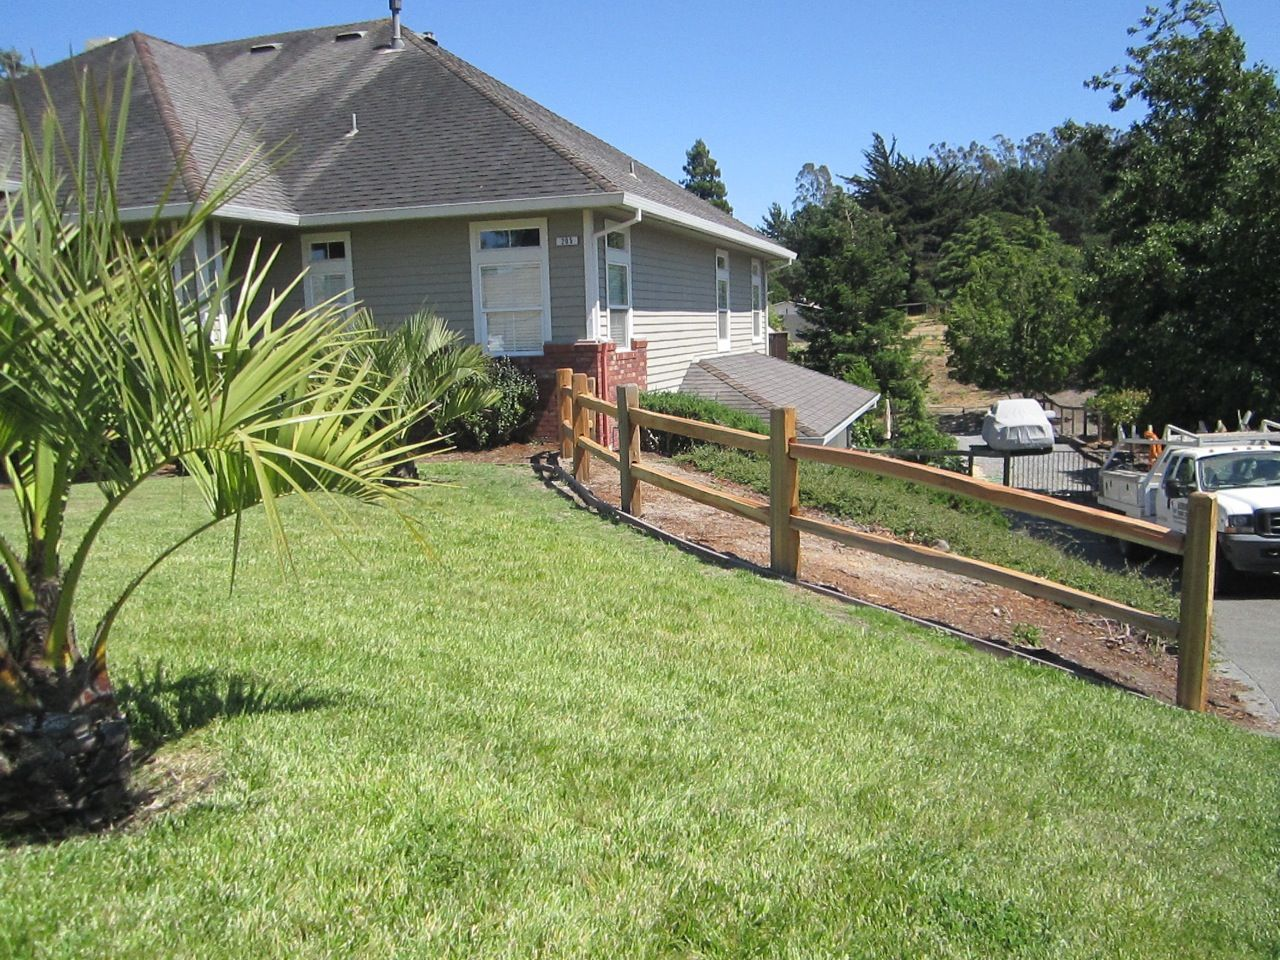 2 Rail Split Rail Fence Is A Perfect Yard Divider Outdoor